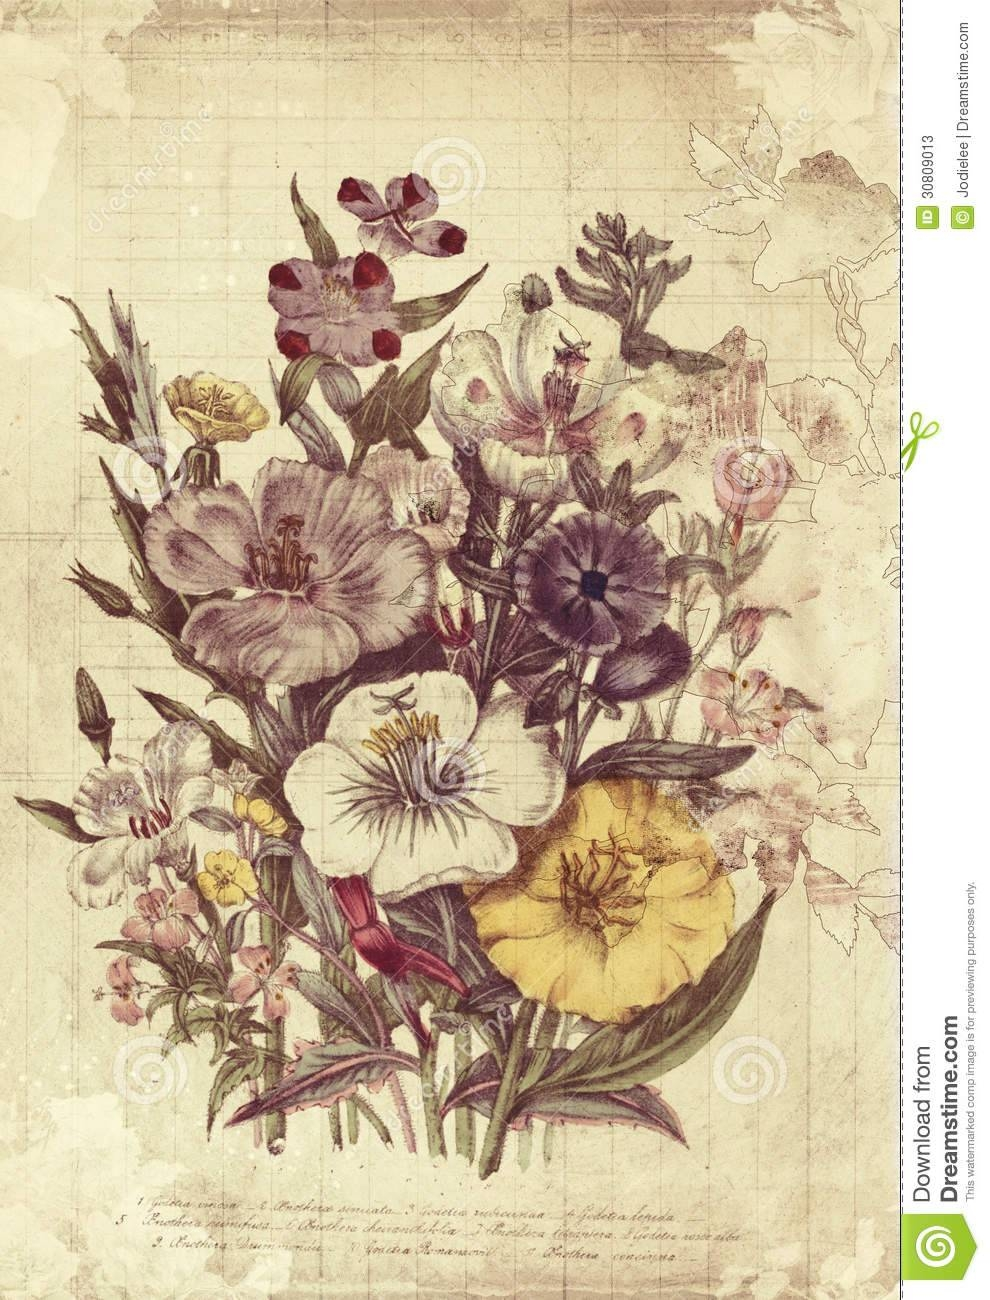 Flowers Botanical Vintage Style Wall Art With Textured Background Regarding Most Recently Released Vintage Style Wall Art (View 2 of 20)